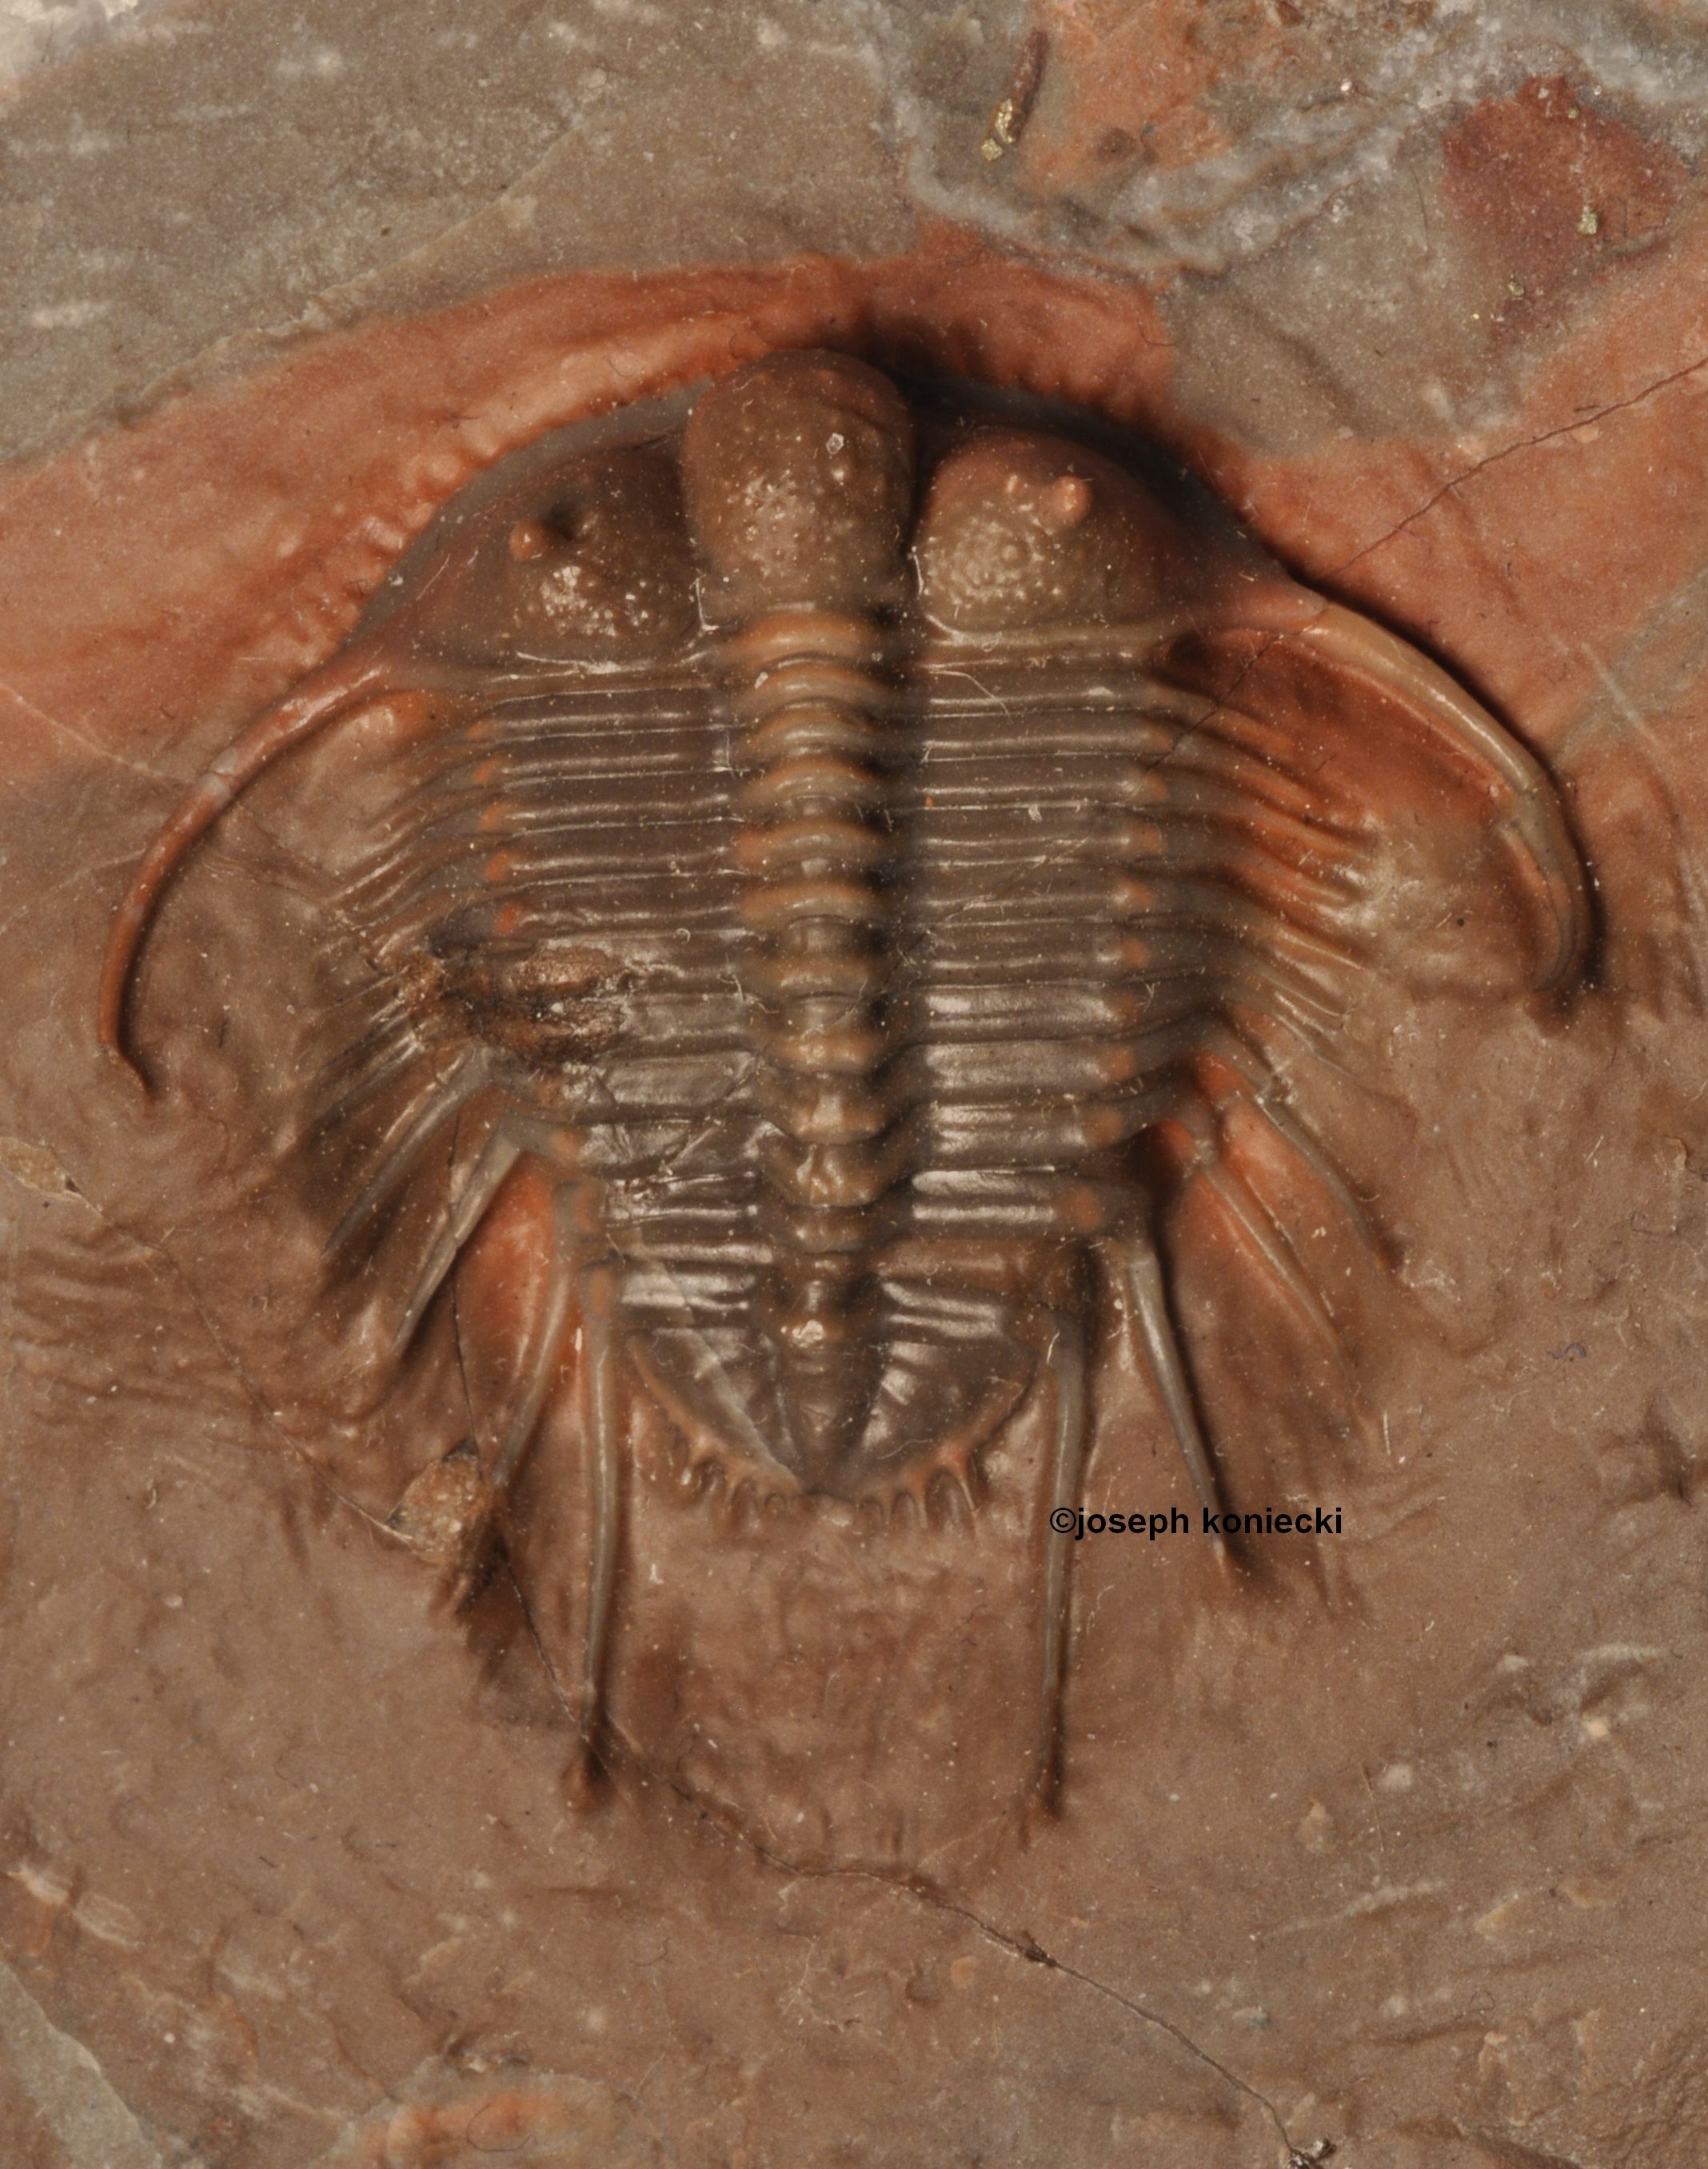 Cyphaspides